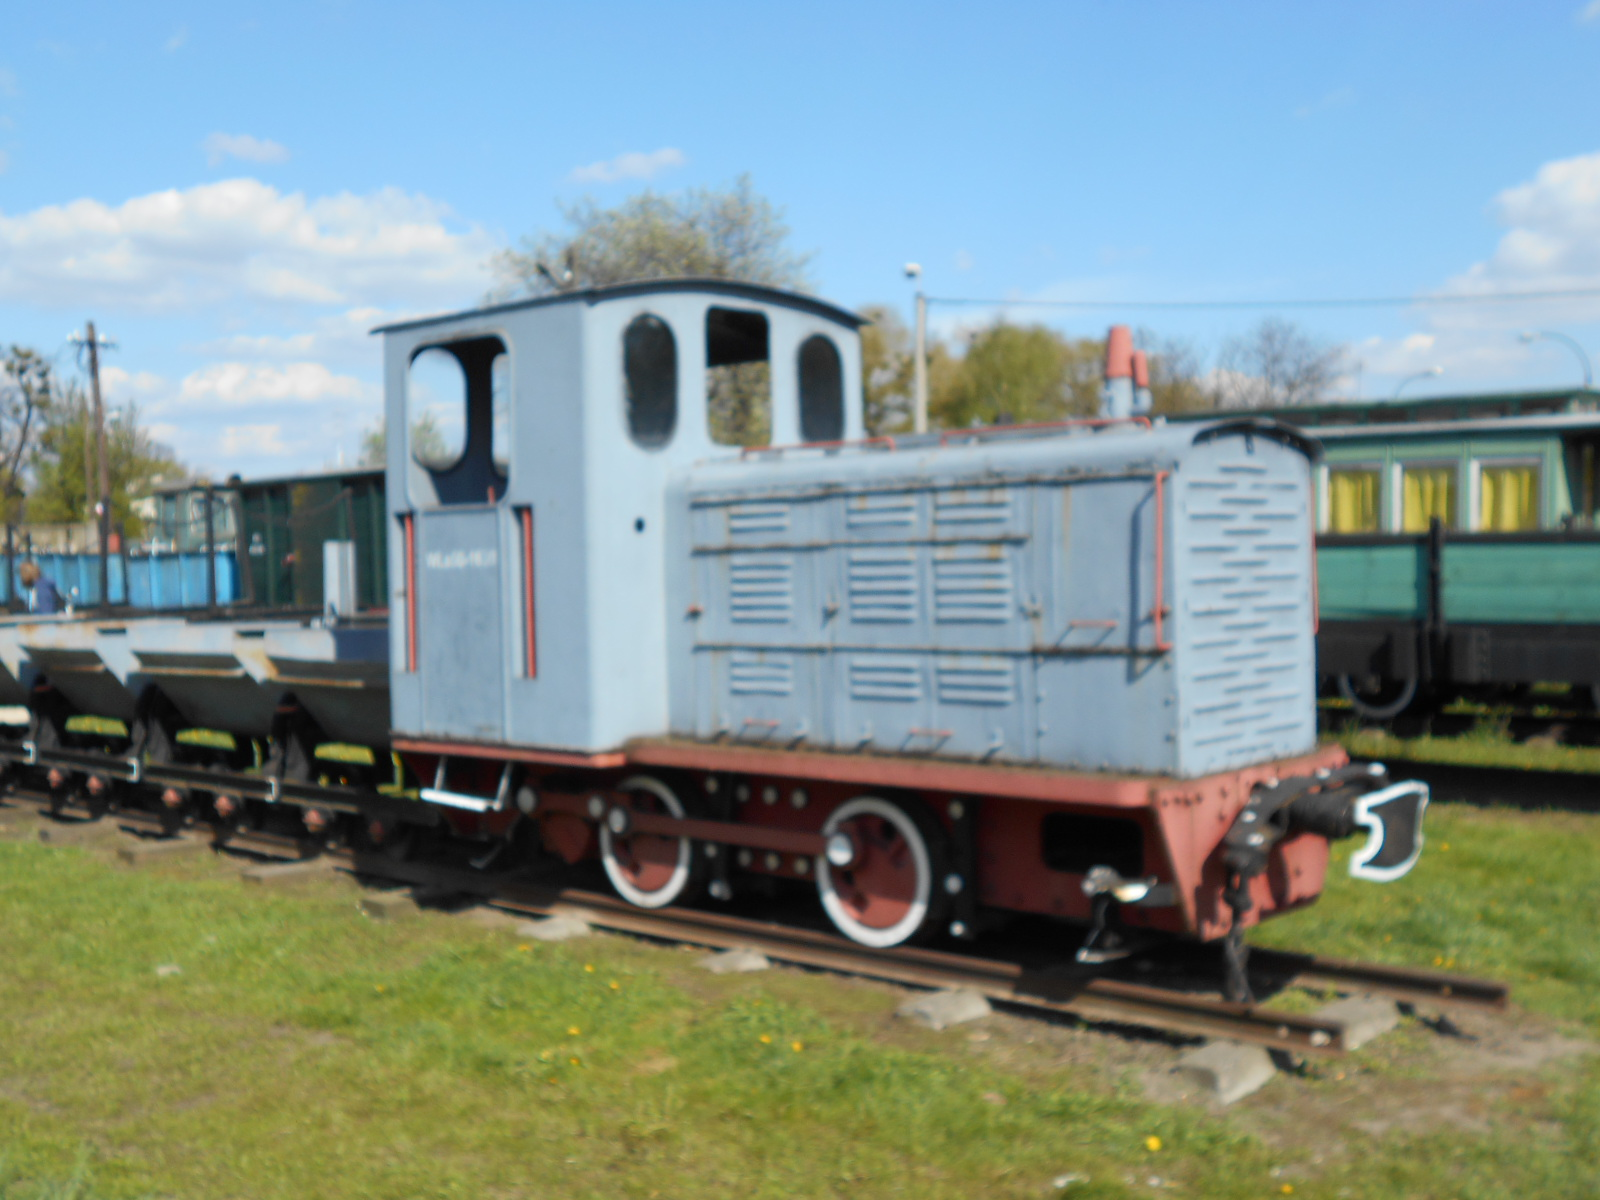 industrial narrow gauge locomotive